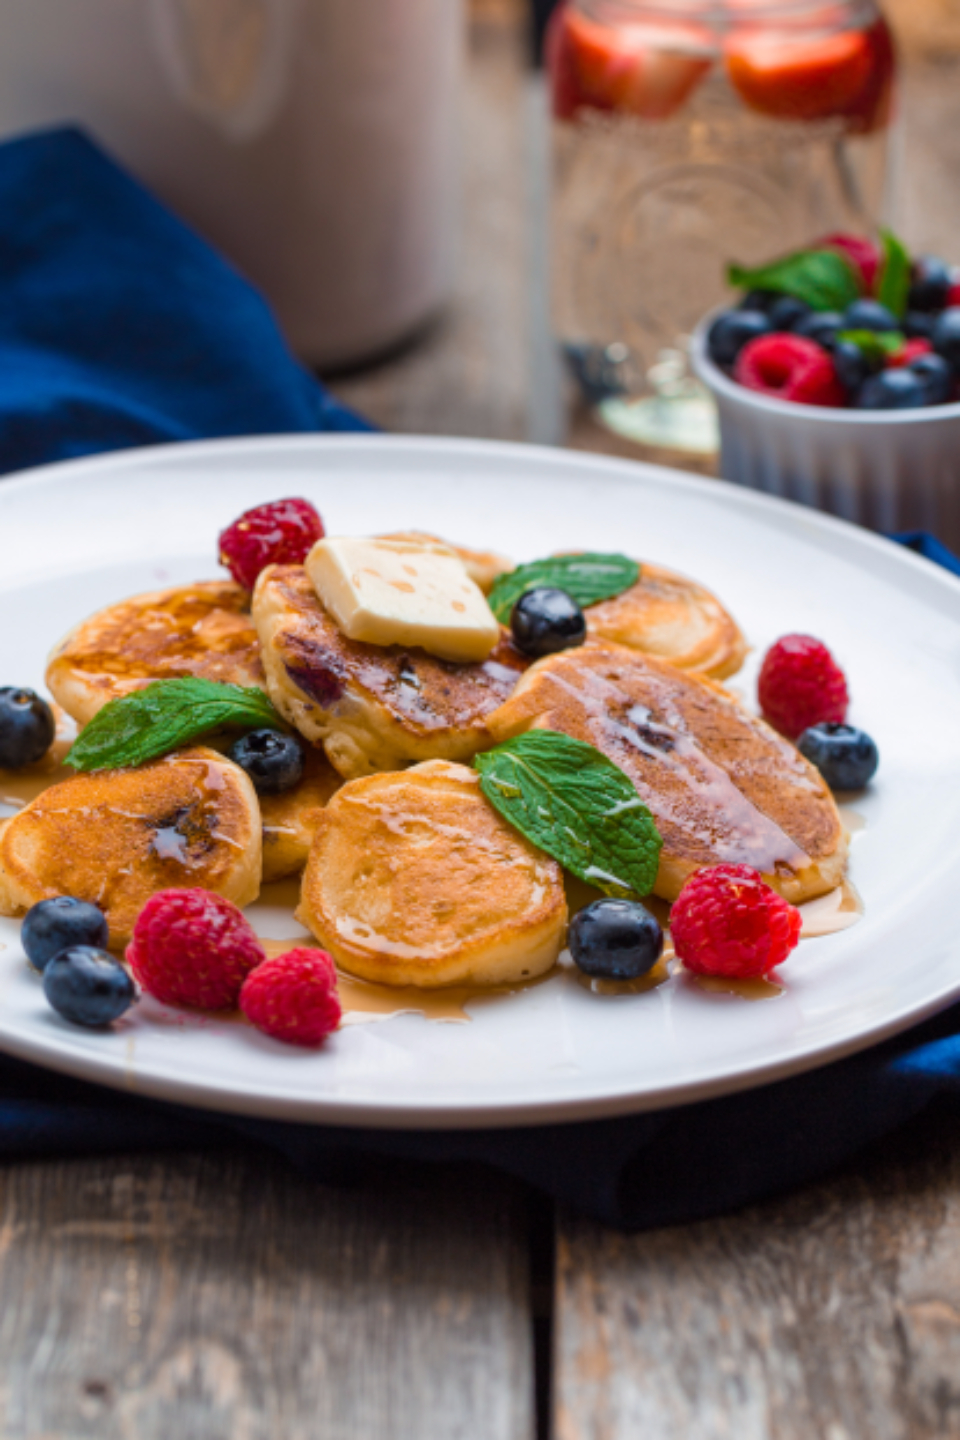 food food photography fruits pancake pancakes syrup maple syrup healthy breakfast nutritutional raspberries raspberry blueberries blueberry mint butter yummy yum tasty taste